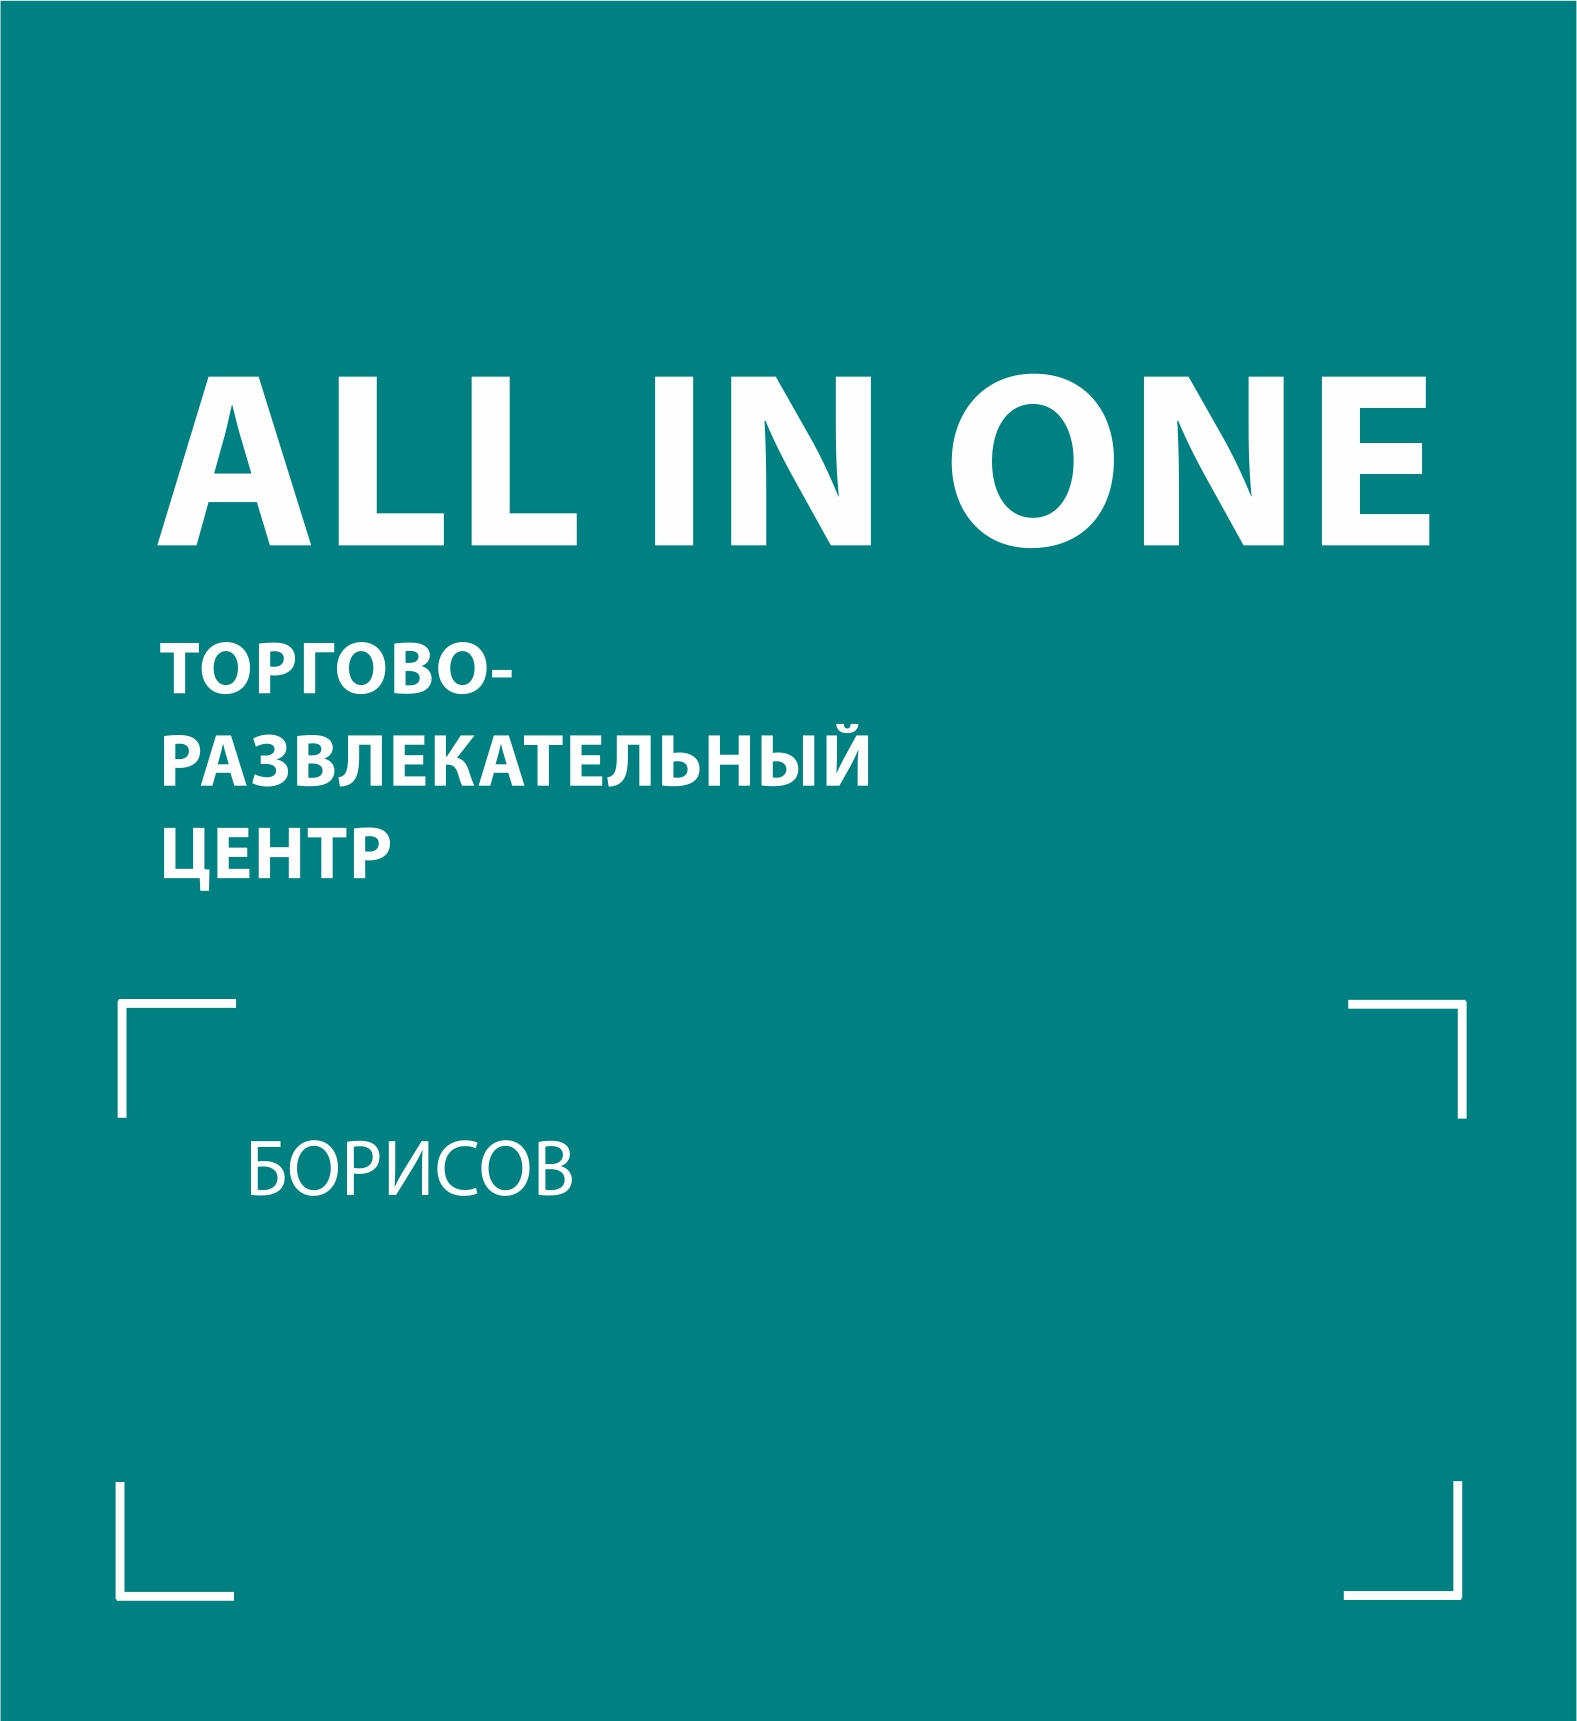 ТРЦ «ALL IN ONE», г. Борисов